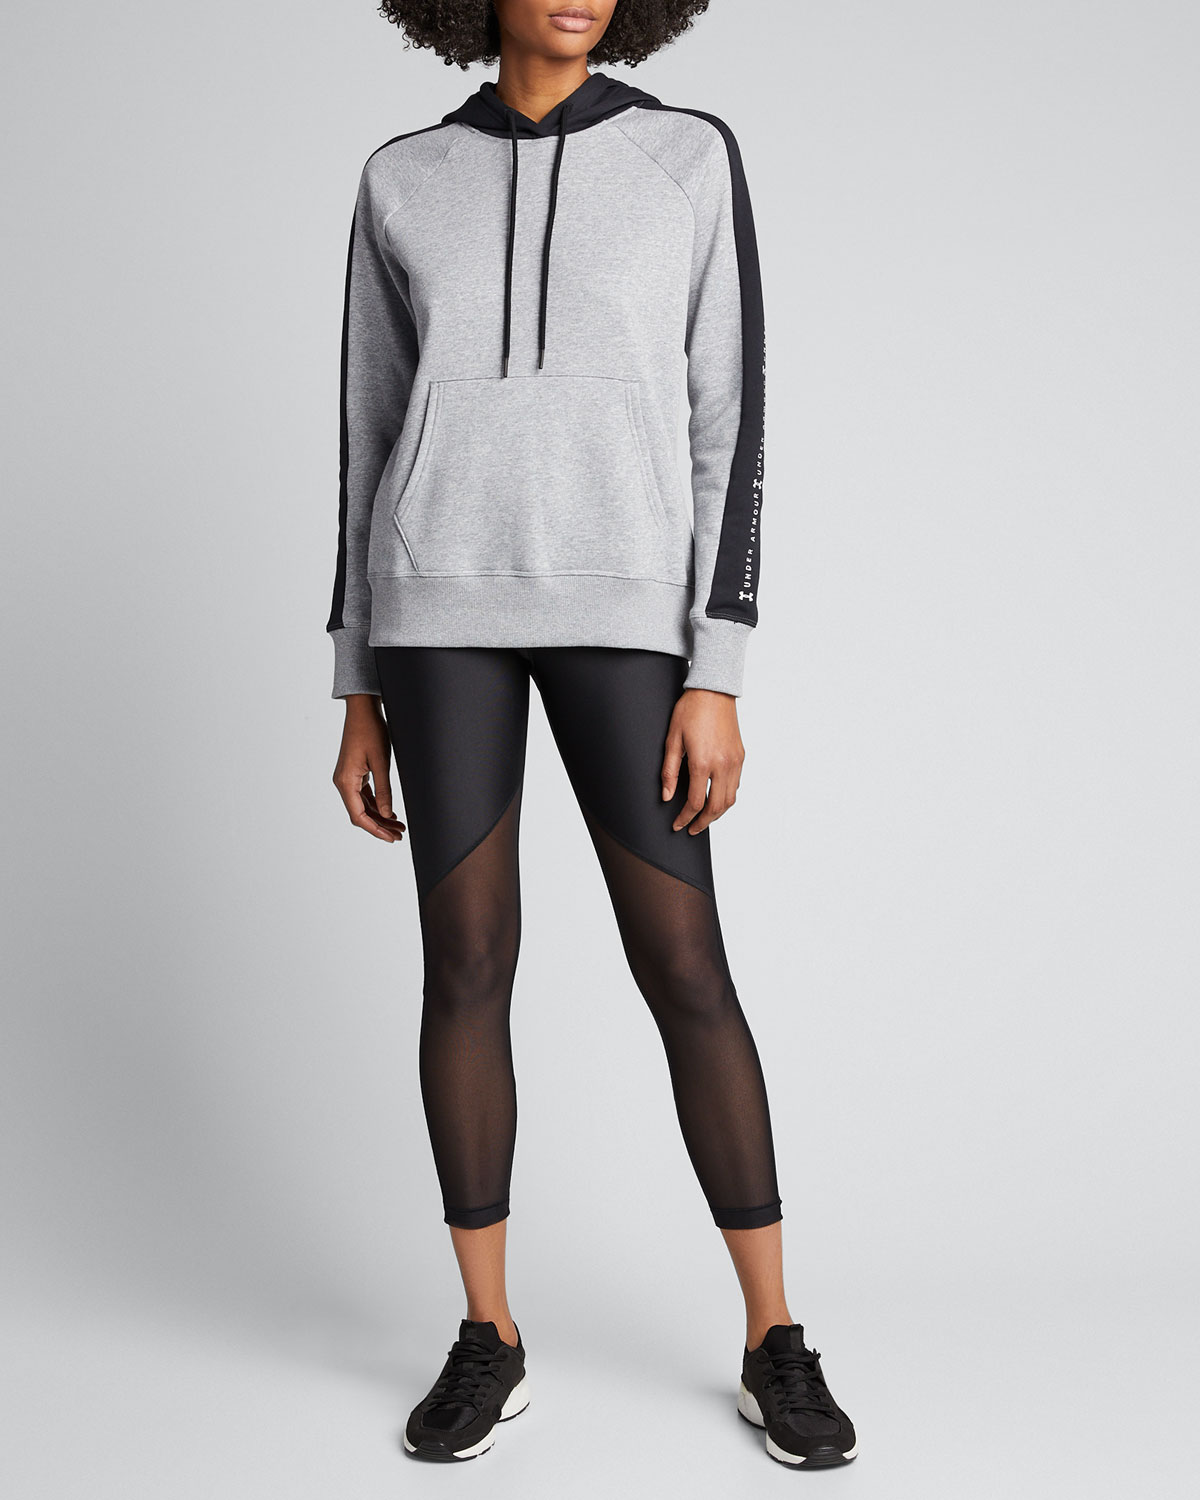 Under Armour Tops RIVAL FLEECE GRAPHIC PULLOVER HOODIE